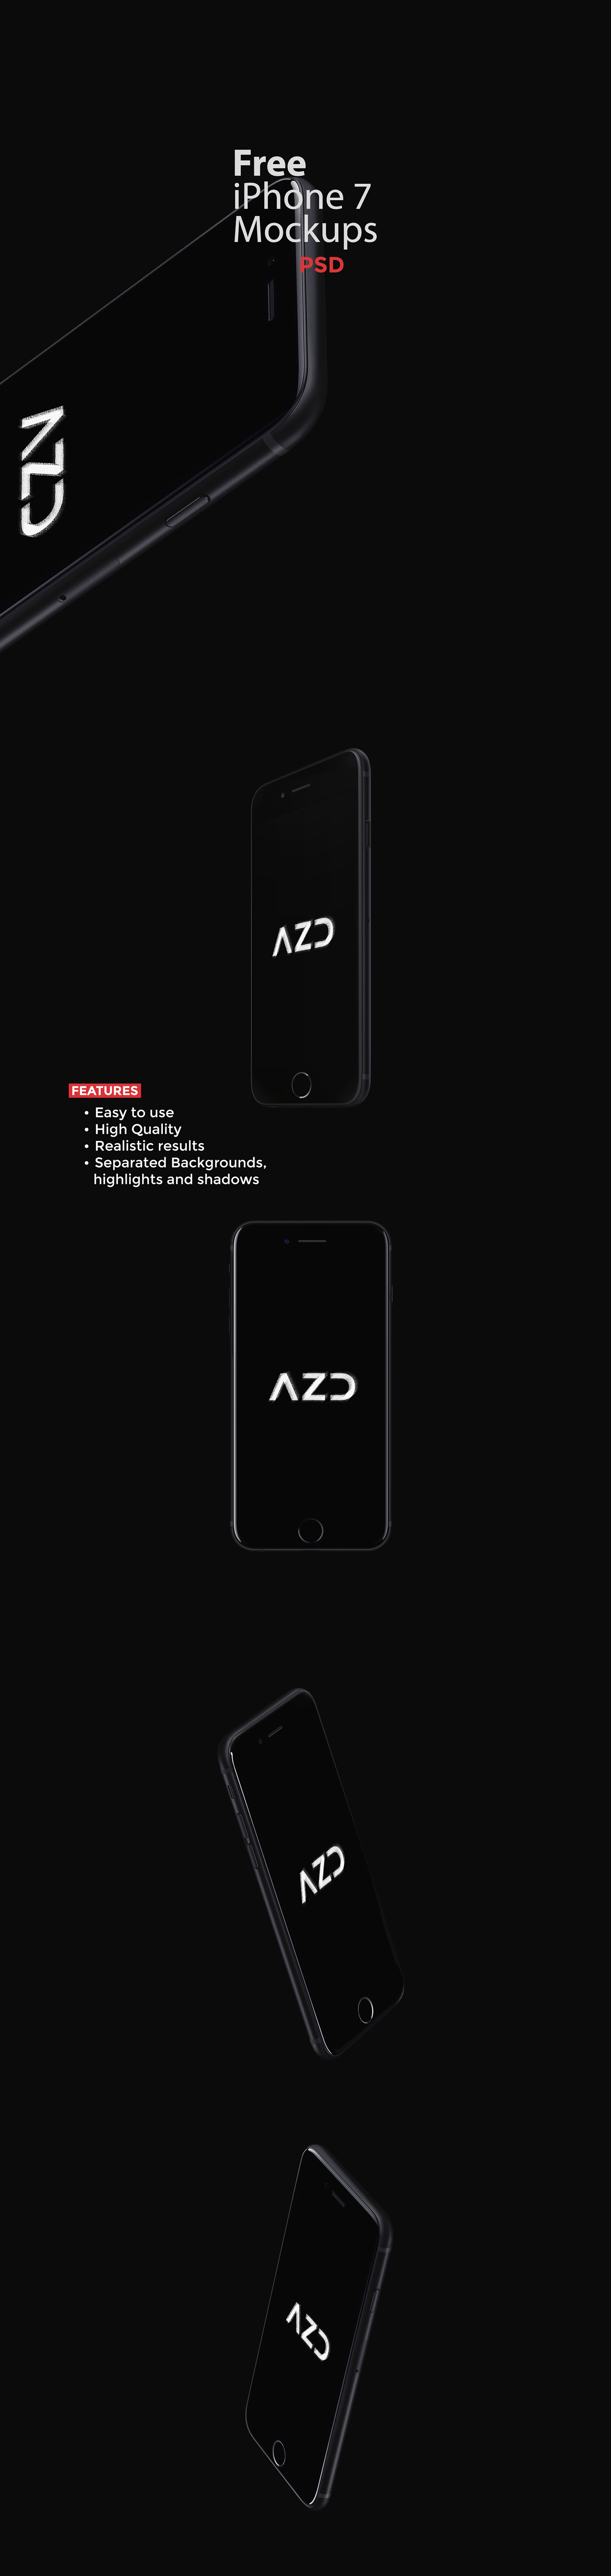 Free iPhone 7 Mockups for Photoshop Designers